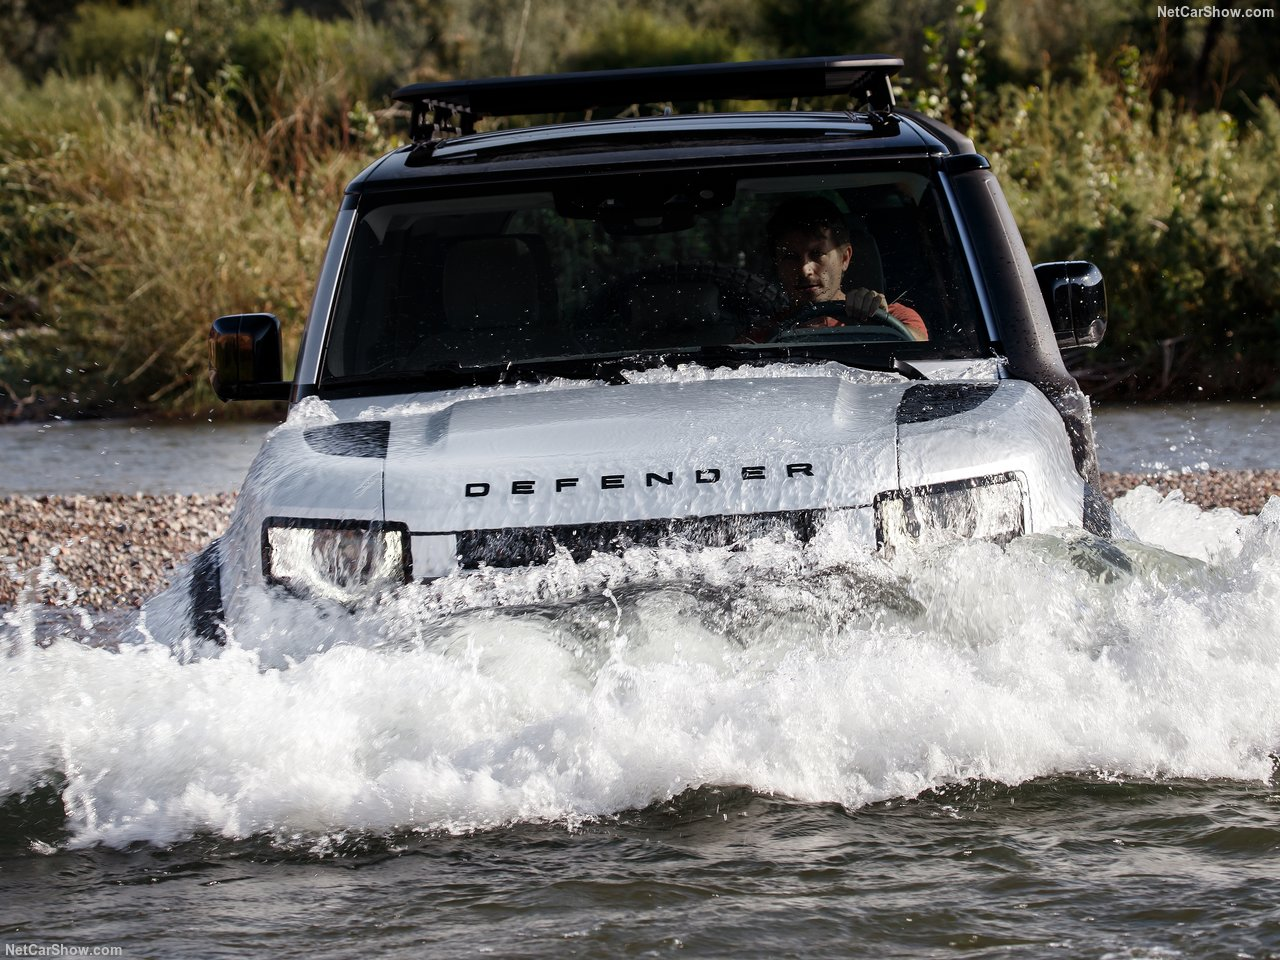 Land_Rover-Defender_110-2020-1280-5e.jpg